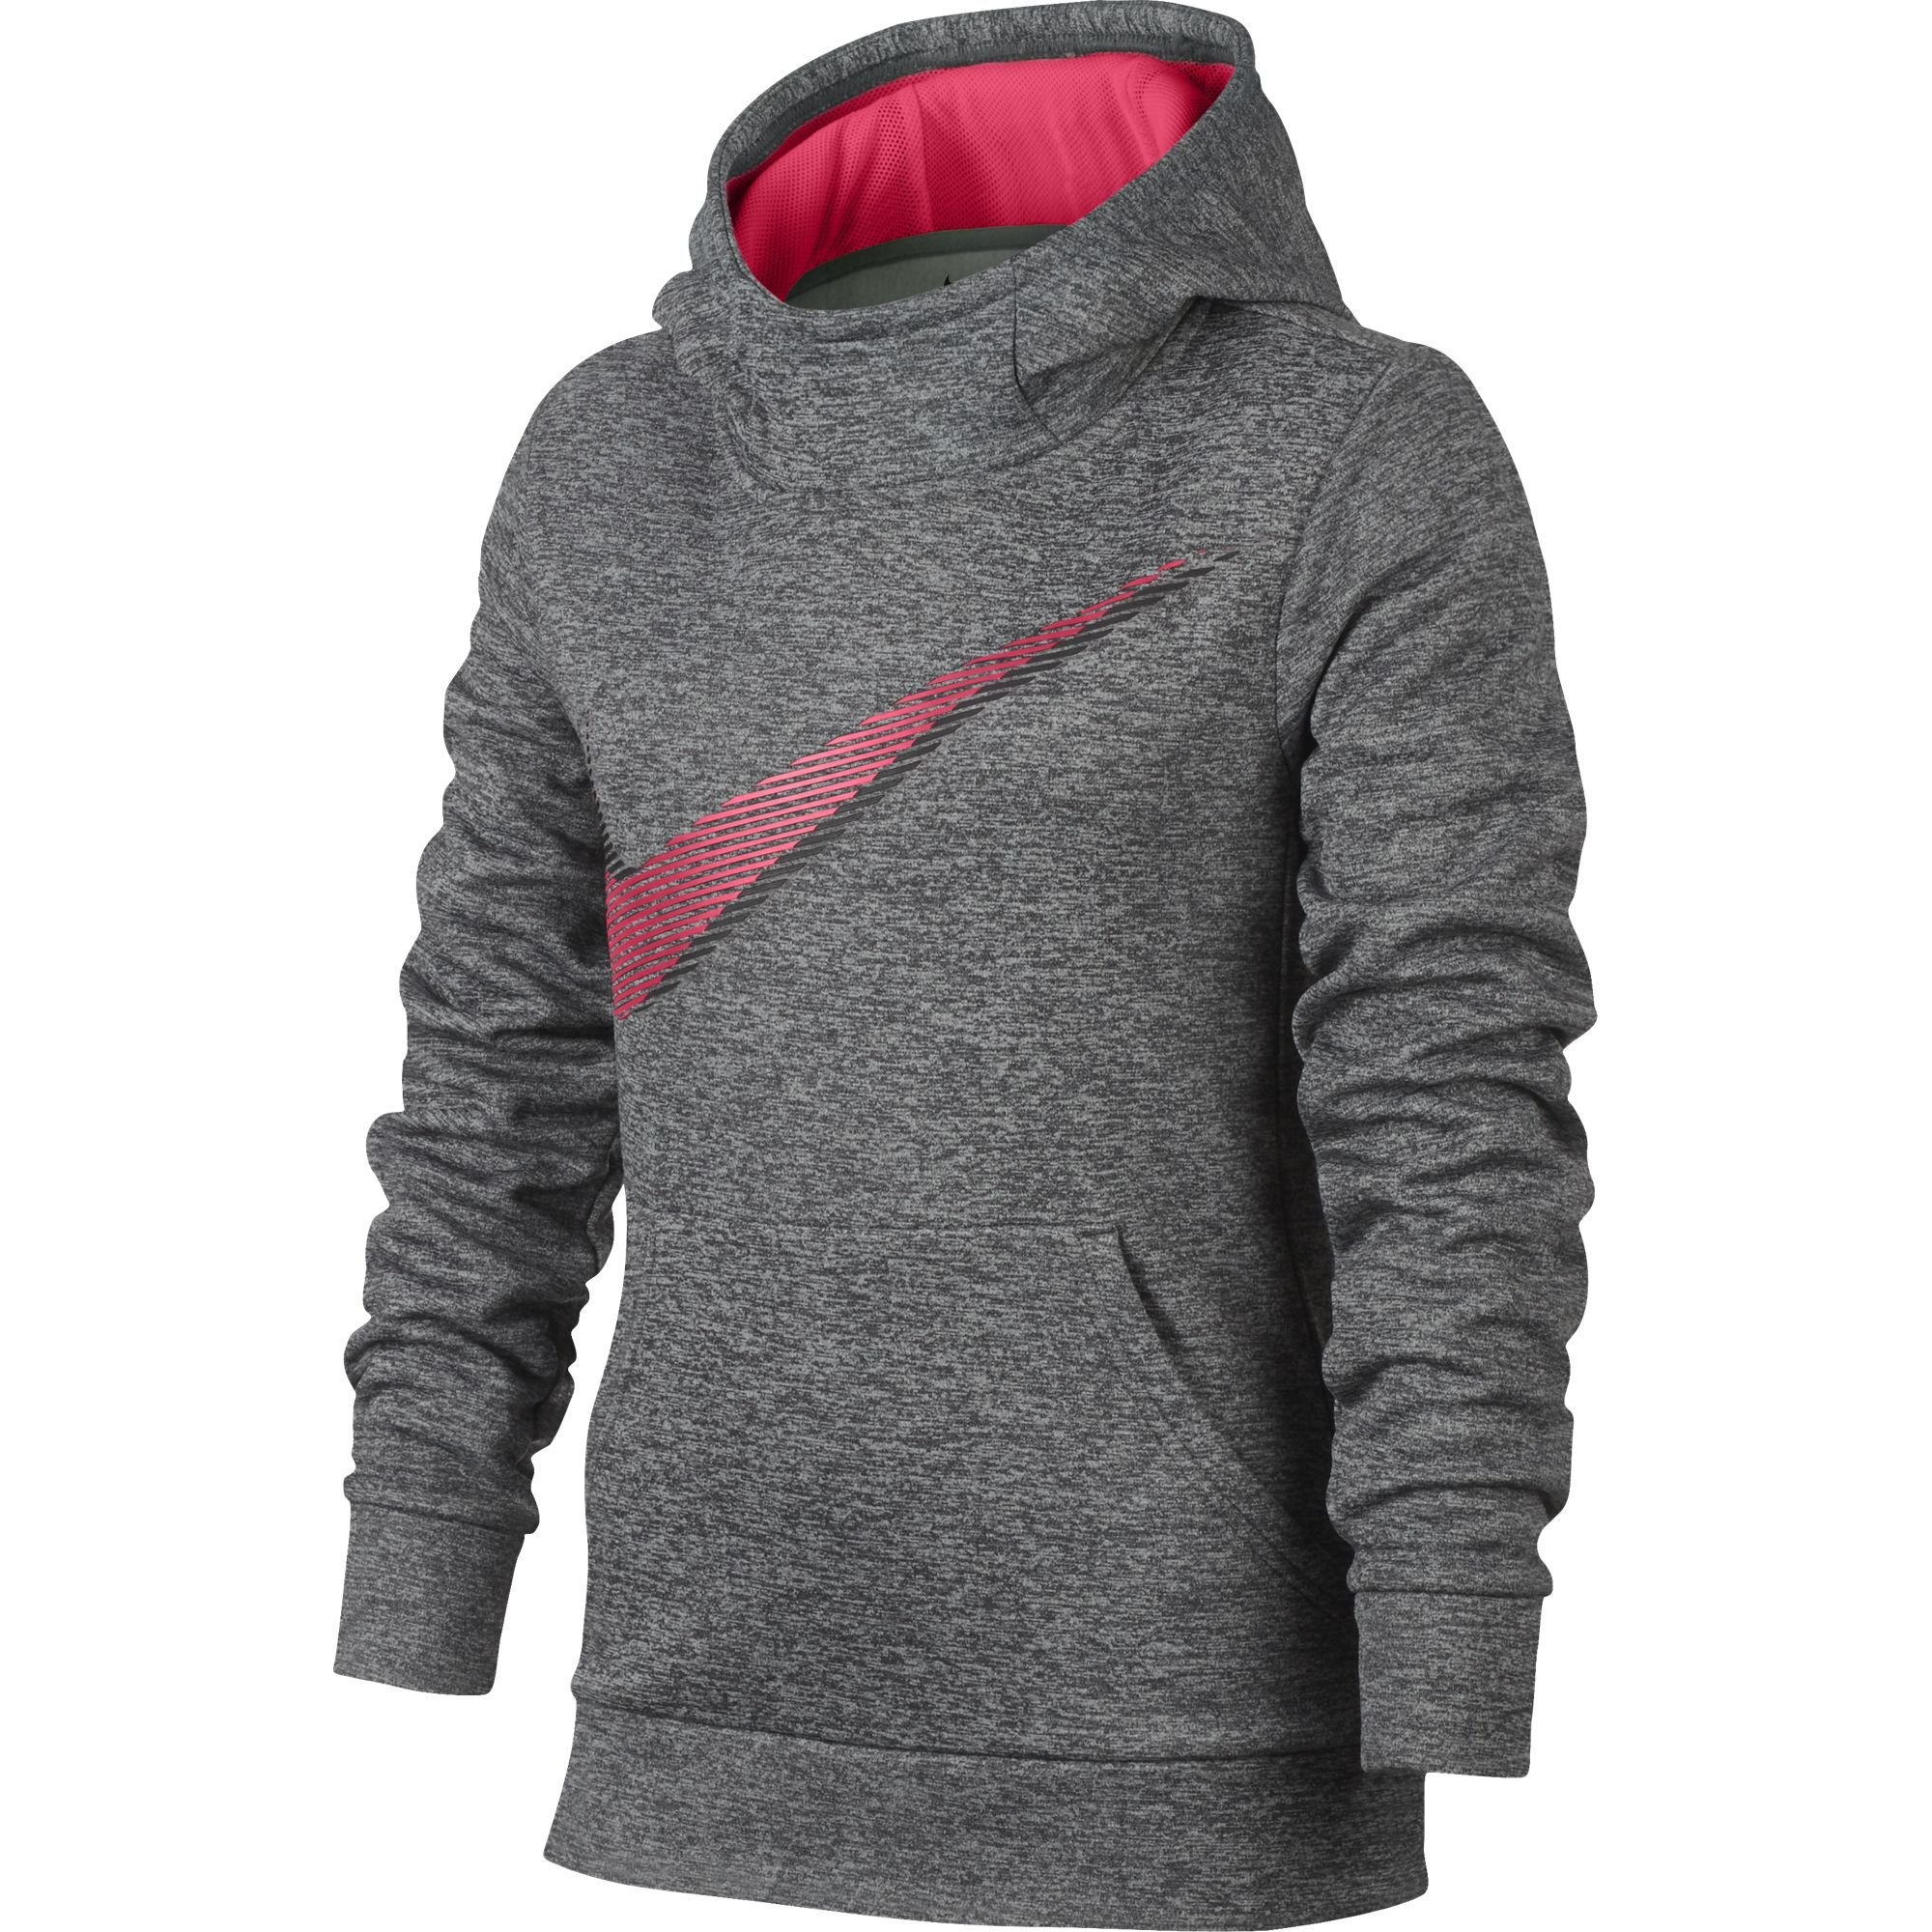 NIKE Girl's Therma Training Hoodie Dark Grey Heather/Racer Pink Size X-Large